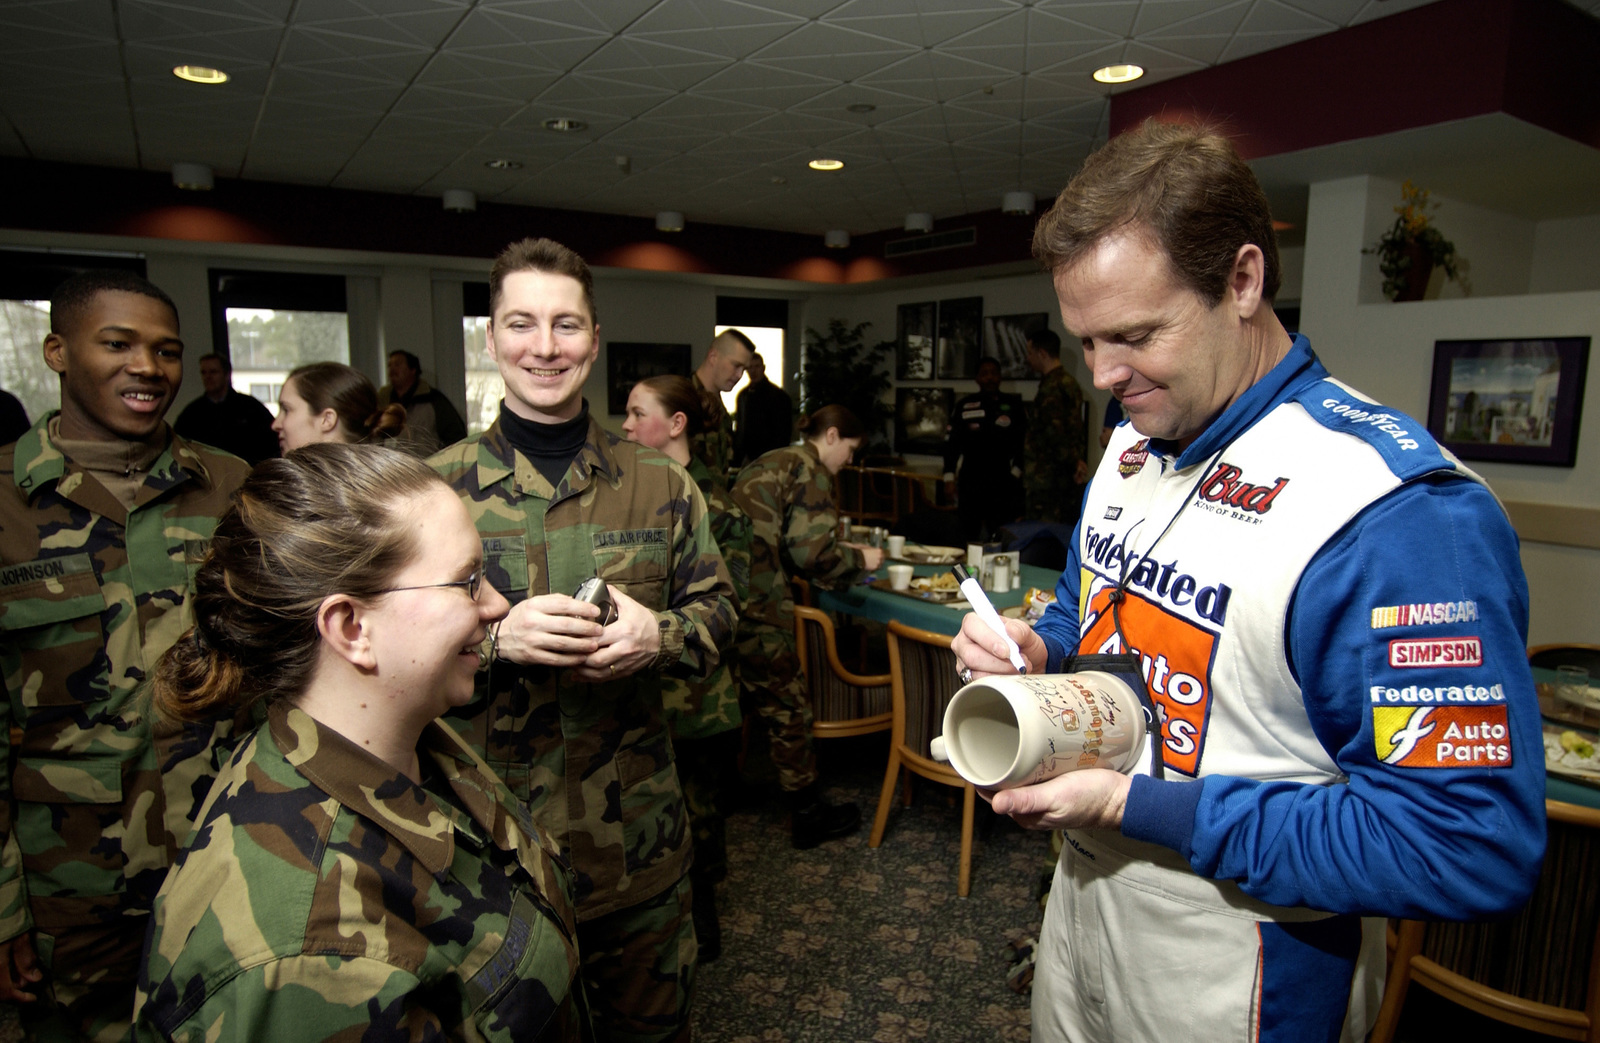 National Association for Stock Car Auto Racing (NASCAR) Mike Wallace, driver for Team Freedom Racing, signs autographs for Air Force and Army service members during a luncheon at Ramstein Air Base (AB), Germany. NASCAR celebrities are touring Europe as part of a joint venture with the Department of Defense and the Employers Support of Guard and Reserve to boost morale and show employers back home what Guard troops are accomplishing